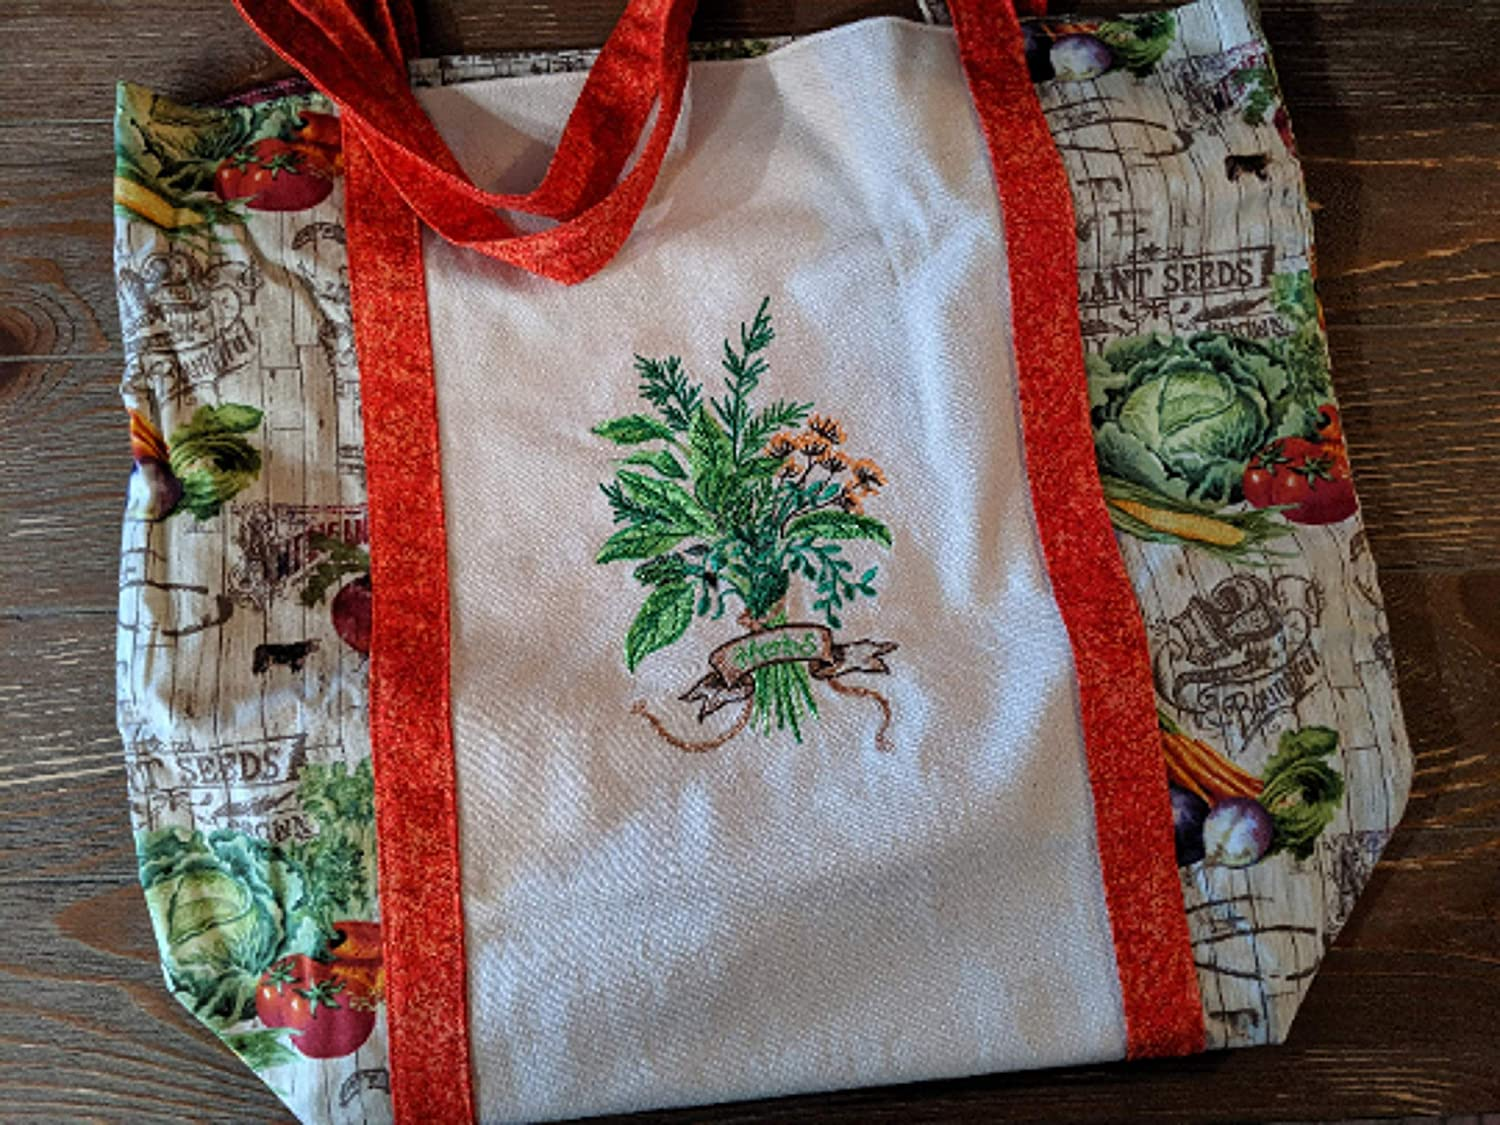 Heavy-duty Washable Reusable Cheap bargain Sturdy Embroidered Tote discount Bag